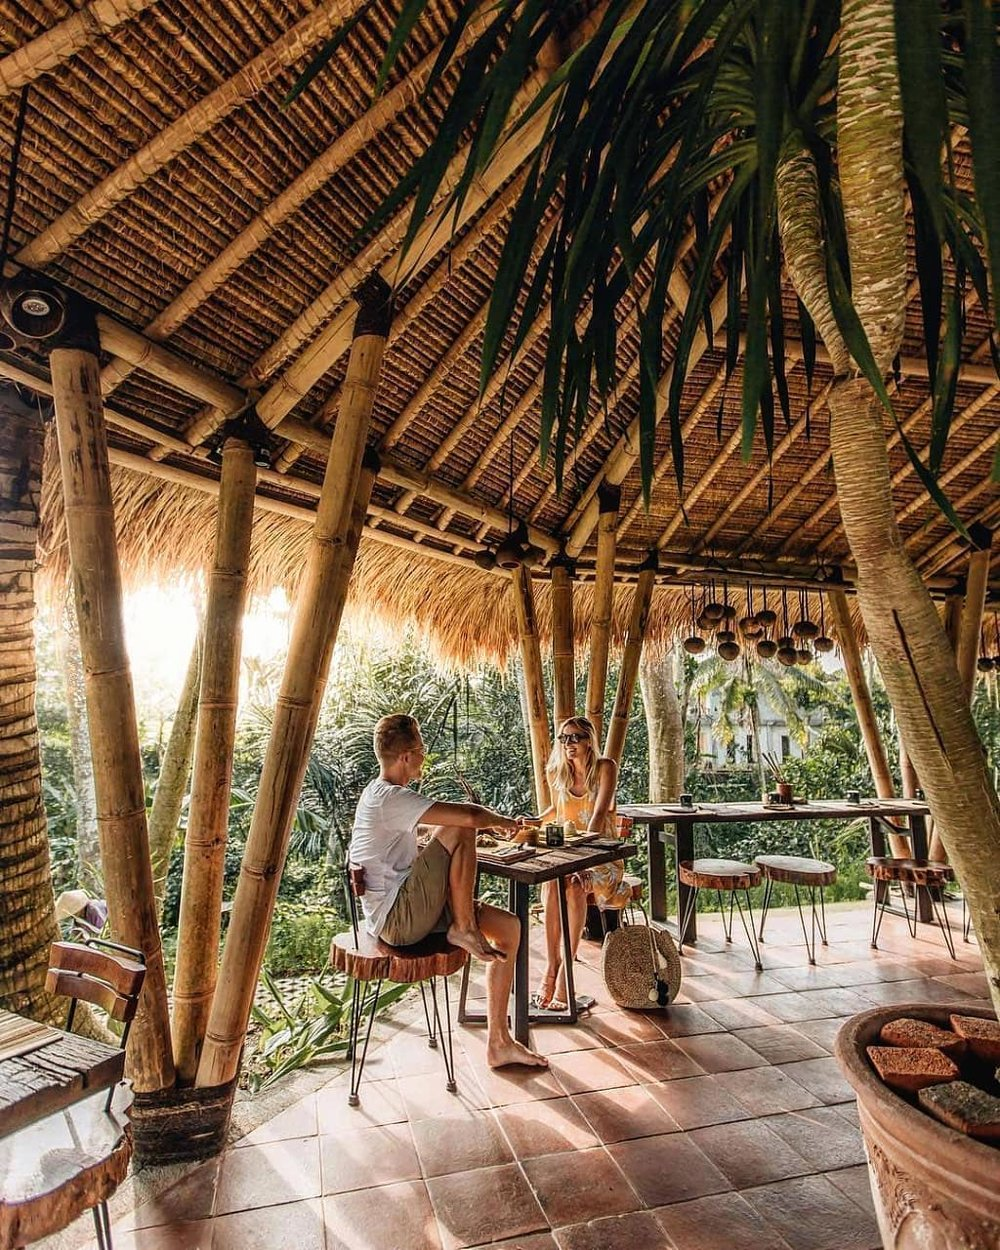 Where Local and Luxury Meet - When in Bali, one expects the luxury of waking up in paradise, and that experience is exactly what Desa Visesa Ubud has to offer. This resort is one of the newer spots on the island, but it is the closest you will get to combining the authentic Balinese experience you crave with the five star luxuries and service a destination wedding requires.Desa Visesa Ubud is most certainly a luxury resort, but upon arriving you will get the sense that the grounds feel much more like a local Balinese village. The winding streets and lush plants of Ubus blend into the landscape of the resort and create a seamless connection of local culture and international luxury. Upon check in, you'll be greeted with a Balinese blessing and a performance from local musicians, who enliven the premises with their cheerful serenades. Before heading to your room, we highly recommend a brief golf cart tour around the property - there are so many hidden gems you wouldn't want to miss!The villas are incredibly private and are surrounded by vine-covered walls that overlook green Balinese rice fields. Each villa features an opened-aired lounge area looking onto your own private pool where you can start each morning with a relaxing soak in a gorgeous petal bath - a full-body pampering experience you certainly can't skip out on. The villa's entryways are decorated with Balinese symbols and traditional markings that bring good luck, alongside fragrant offerings to the gods - something found in every local's home and the reason why Bali always smells of burning incense! The bedrooms are, of course, airtight with strong air conditioning and the highest quality bedding. Our favorite aspect of our accommodations was the traditional bamboo ceilings that drew visiting geckos in the night… all part of the Balinese island experience!There are a variety of dining options on offer at Desa Visesa, including fine dining experiences with impressive river views to local warung vibes that r